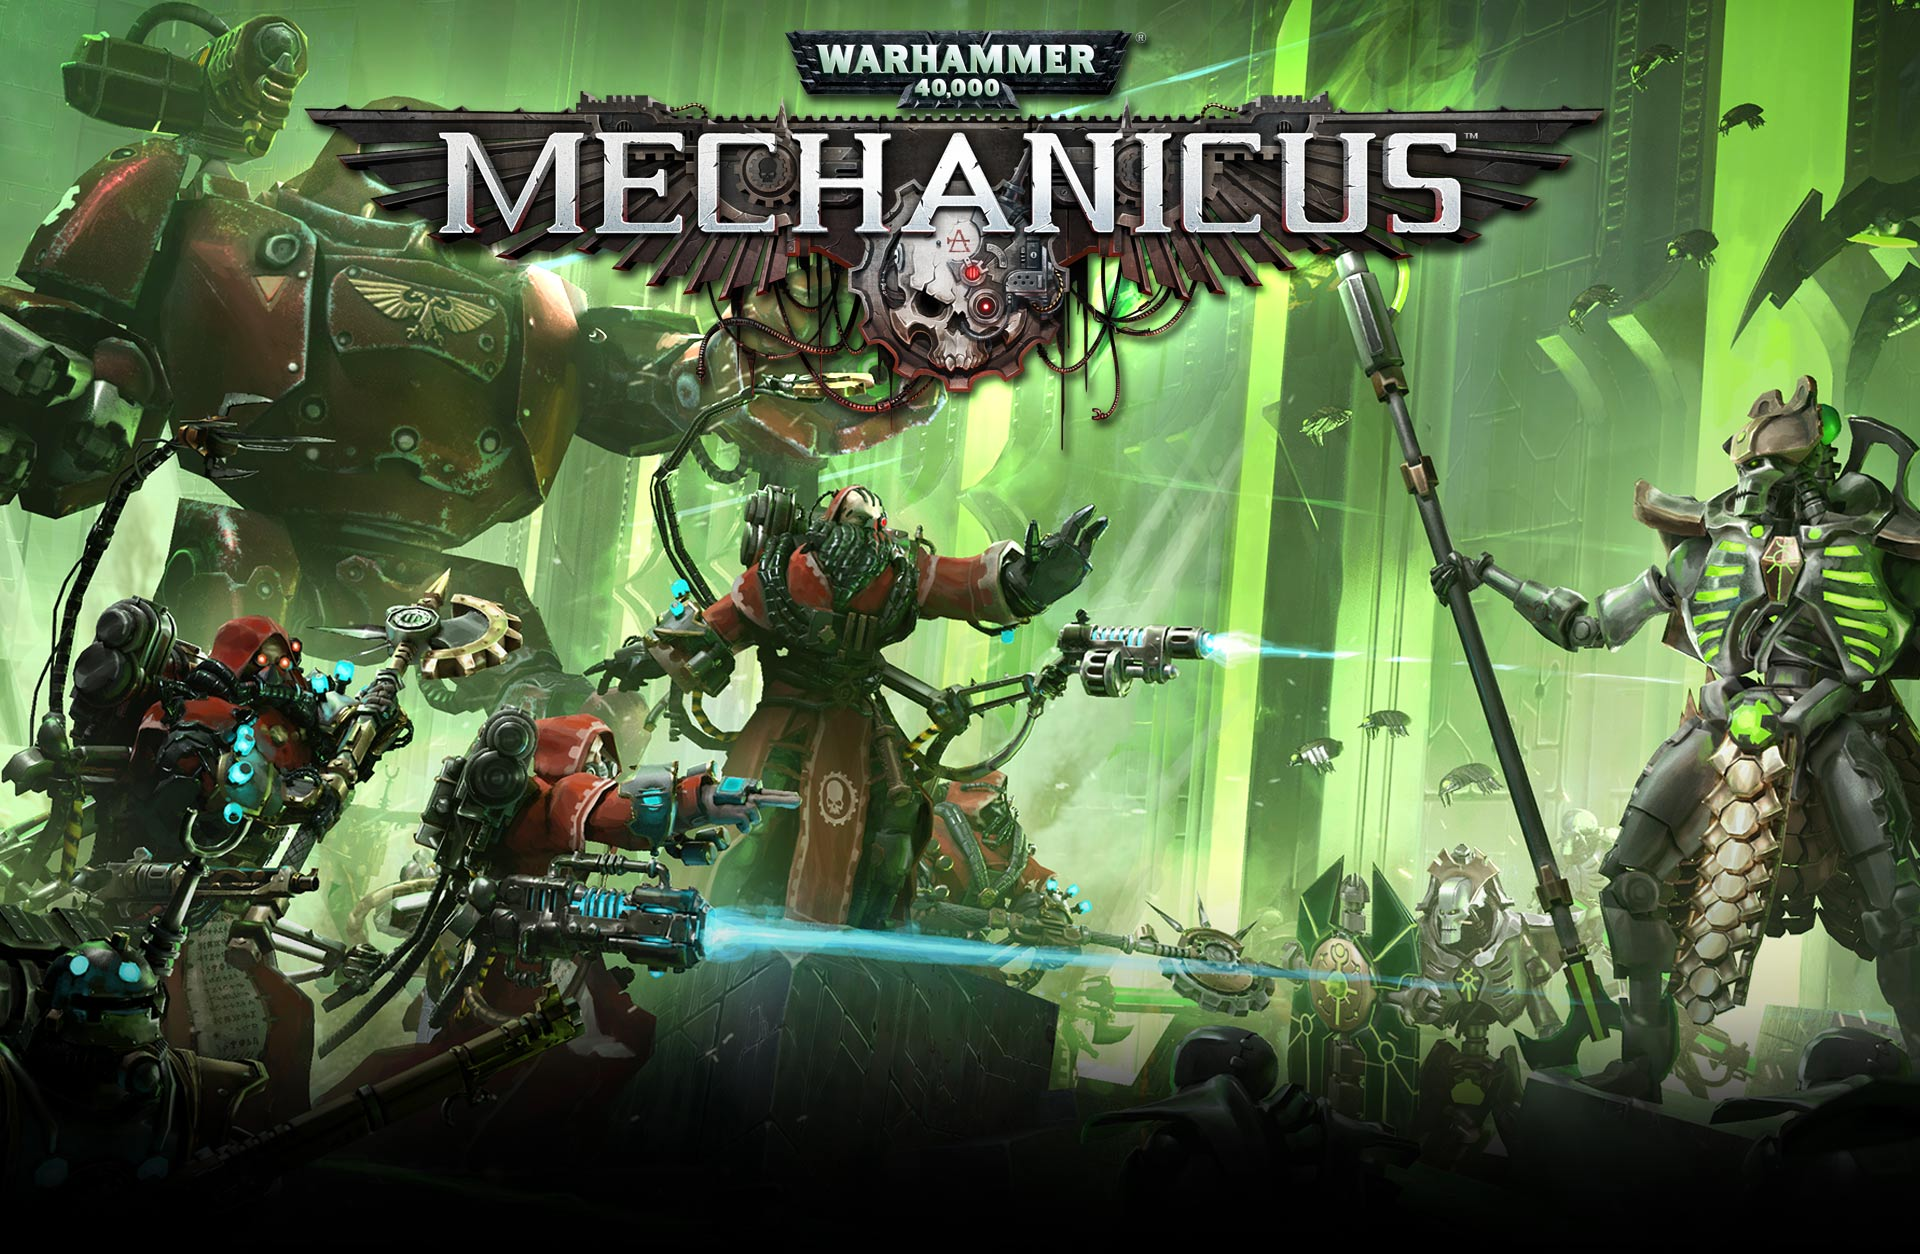 Download Warhammer 40,000 Mechanicus – Omnissiah Edition (v1.3.0 + Heretek DLC, MULTi6) [FitGirl Repack]